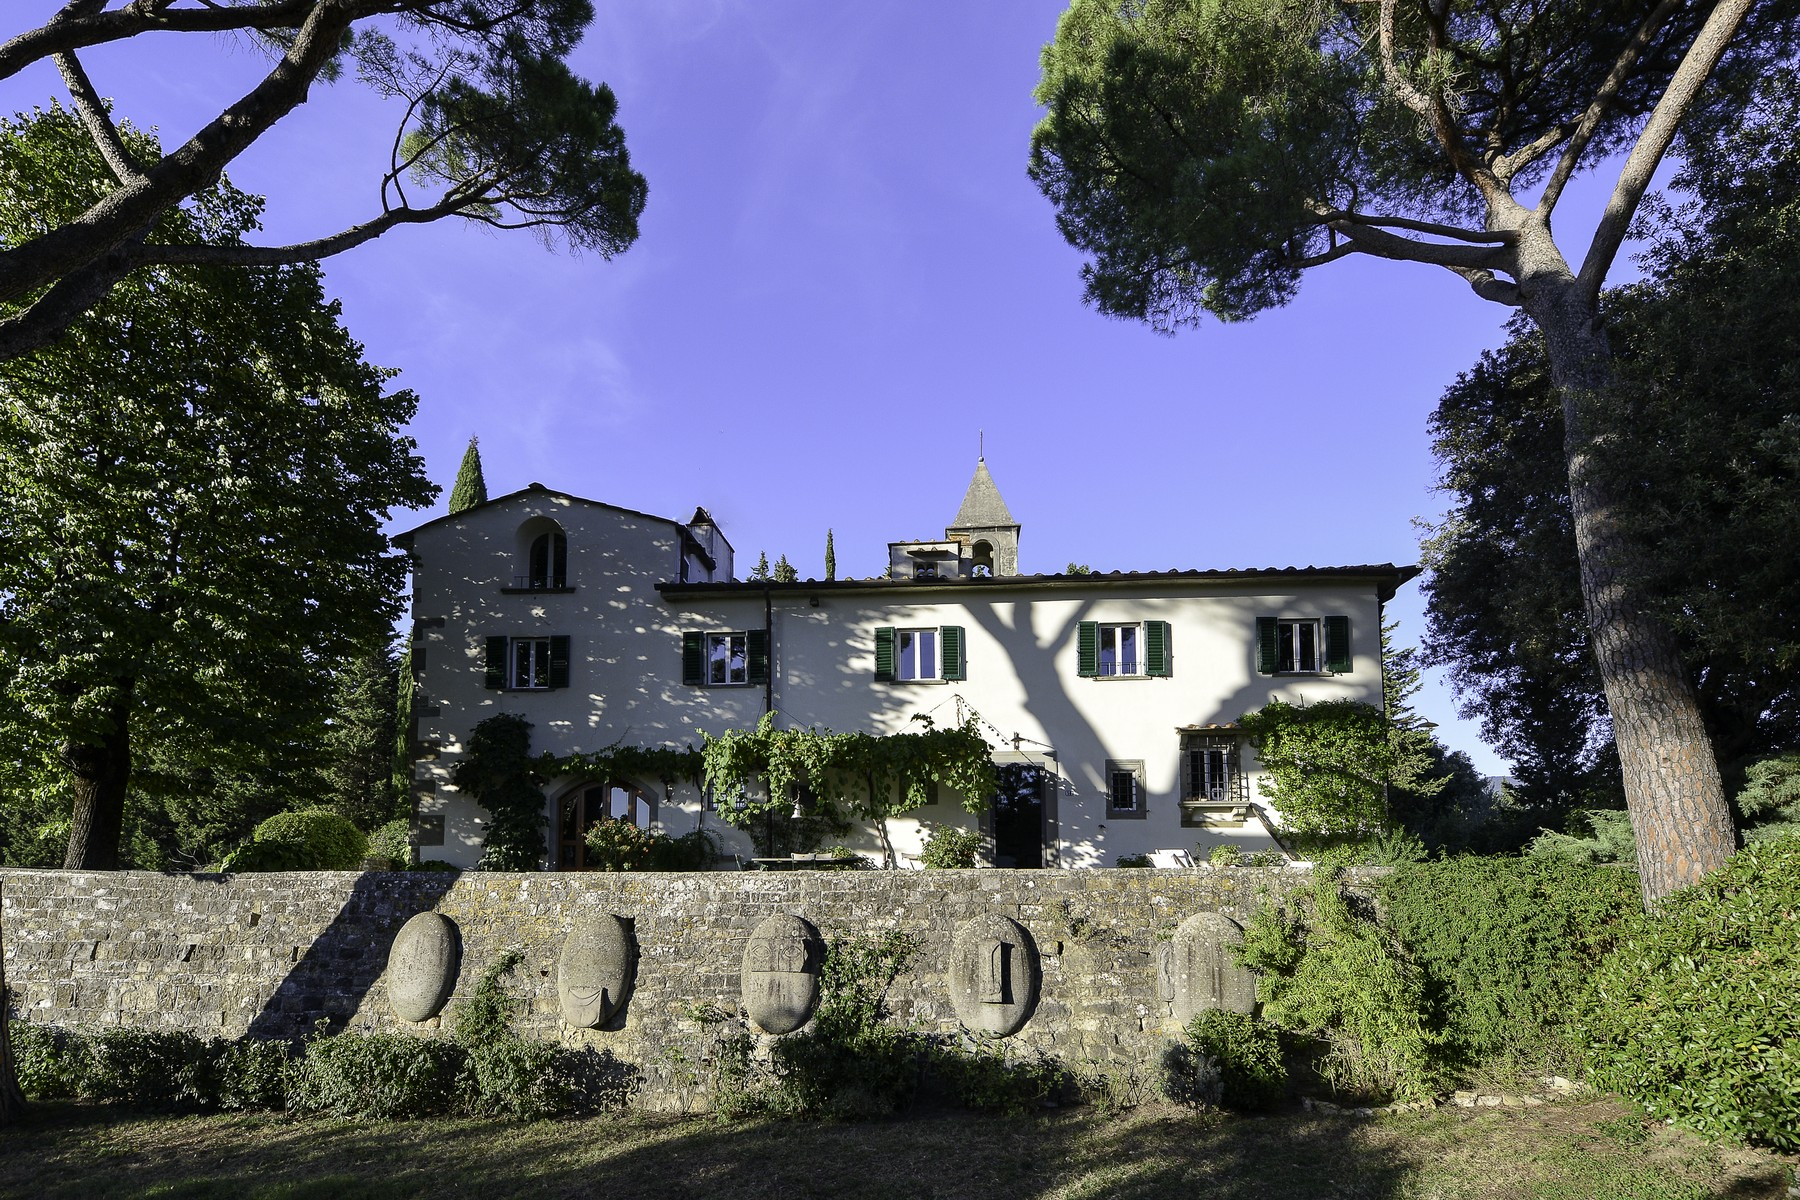 Marvelous renaissance villa on the Florentine's hills